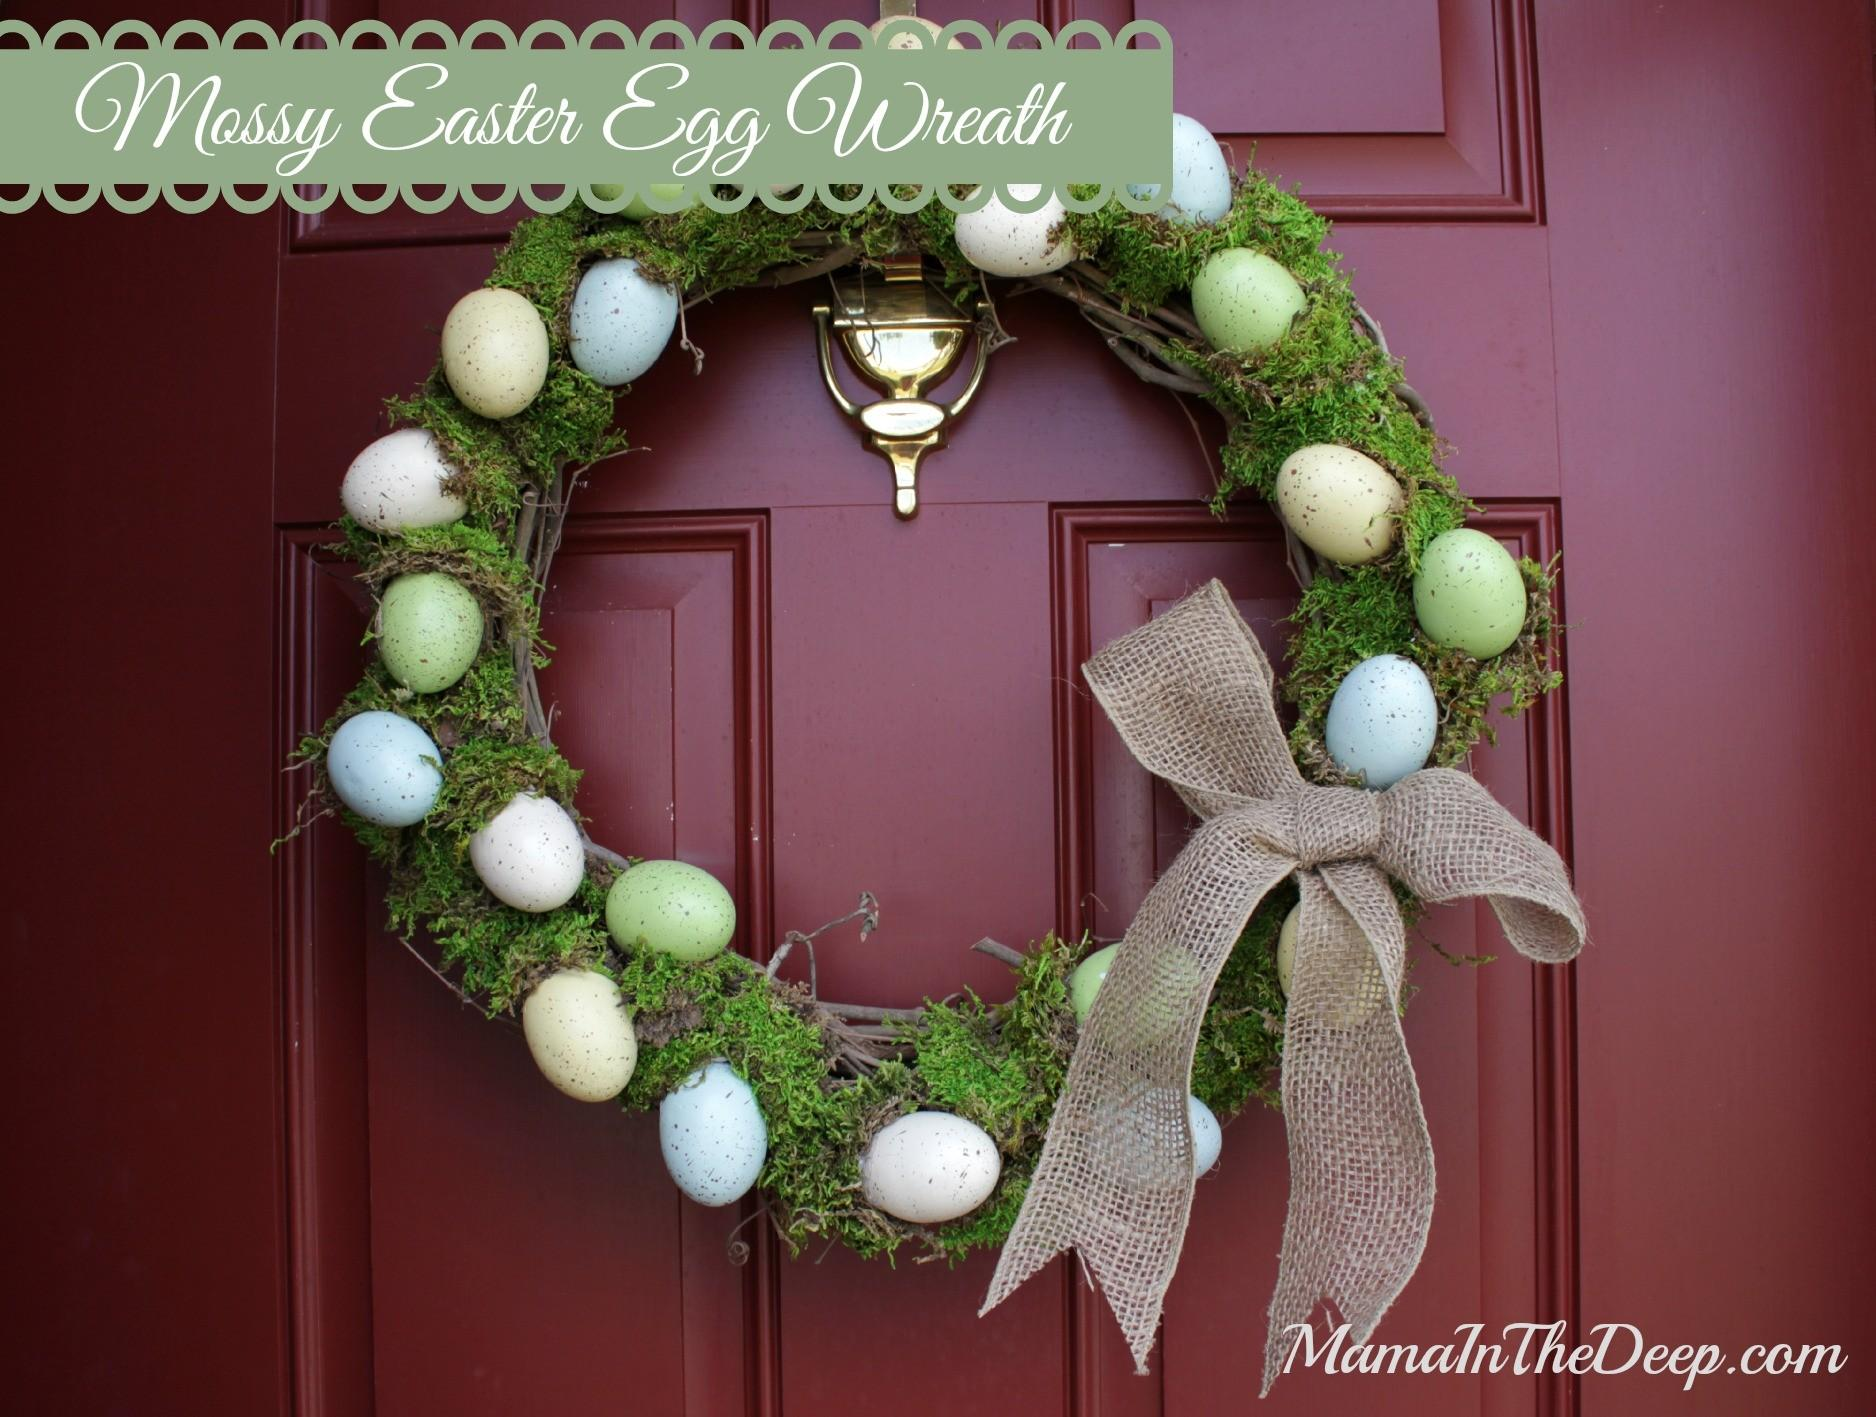 Diy Decor Mossy Easter Egg Wreath